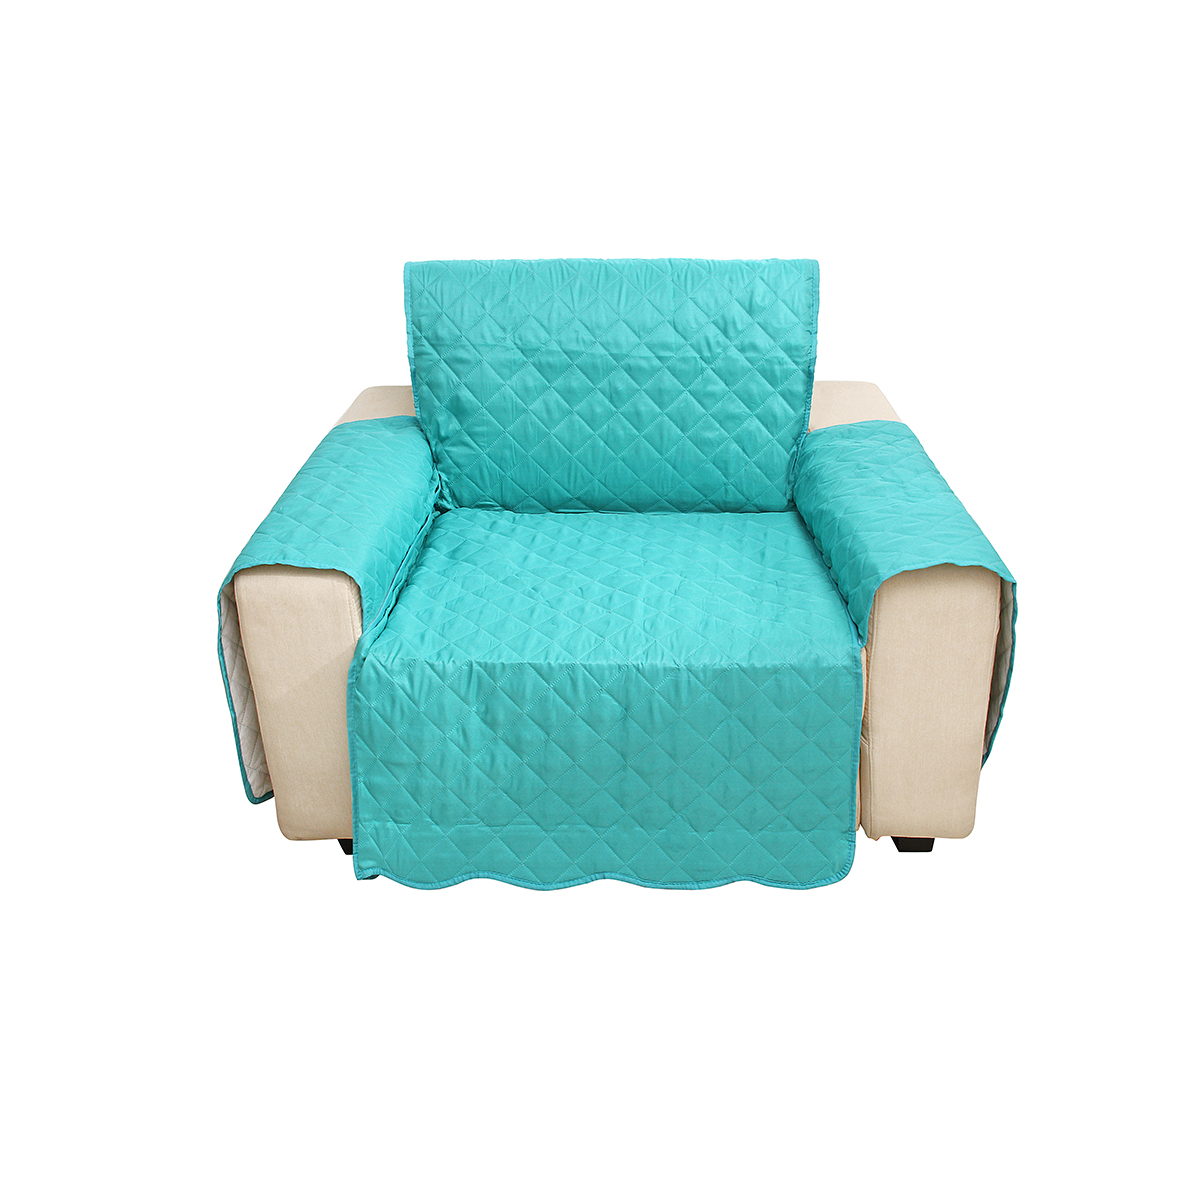 Single Seat Sofa Cover Living Room Home Decoration Polyester Fashion Dust-proof Chair Covers